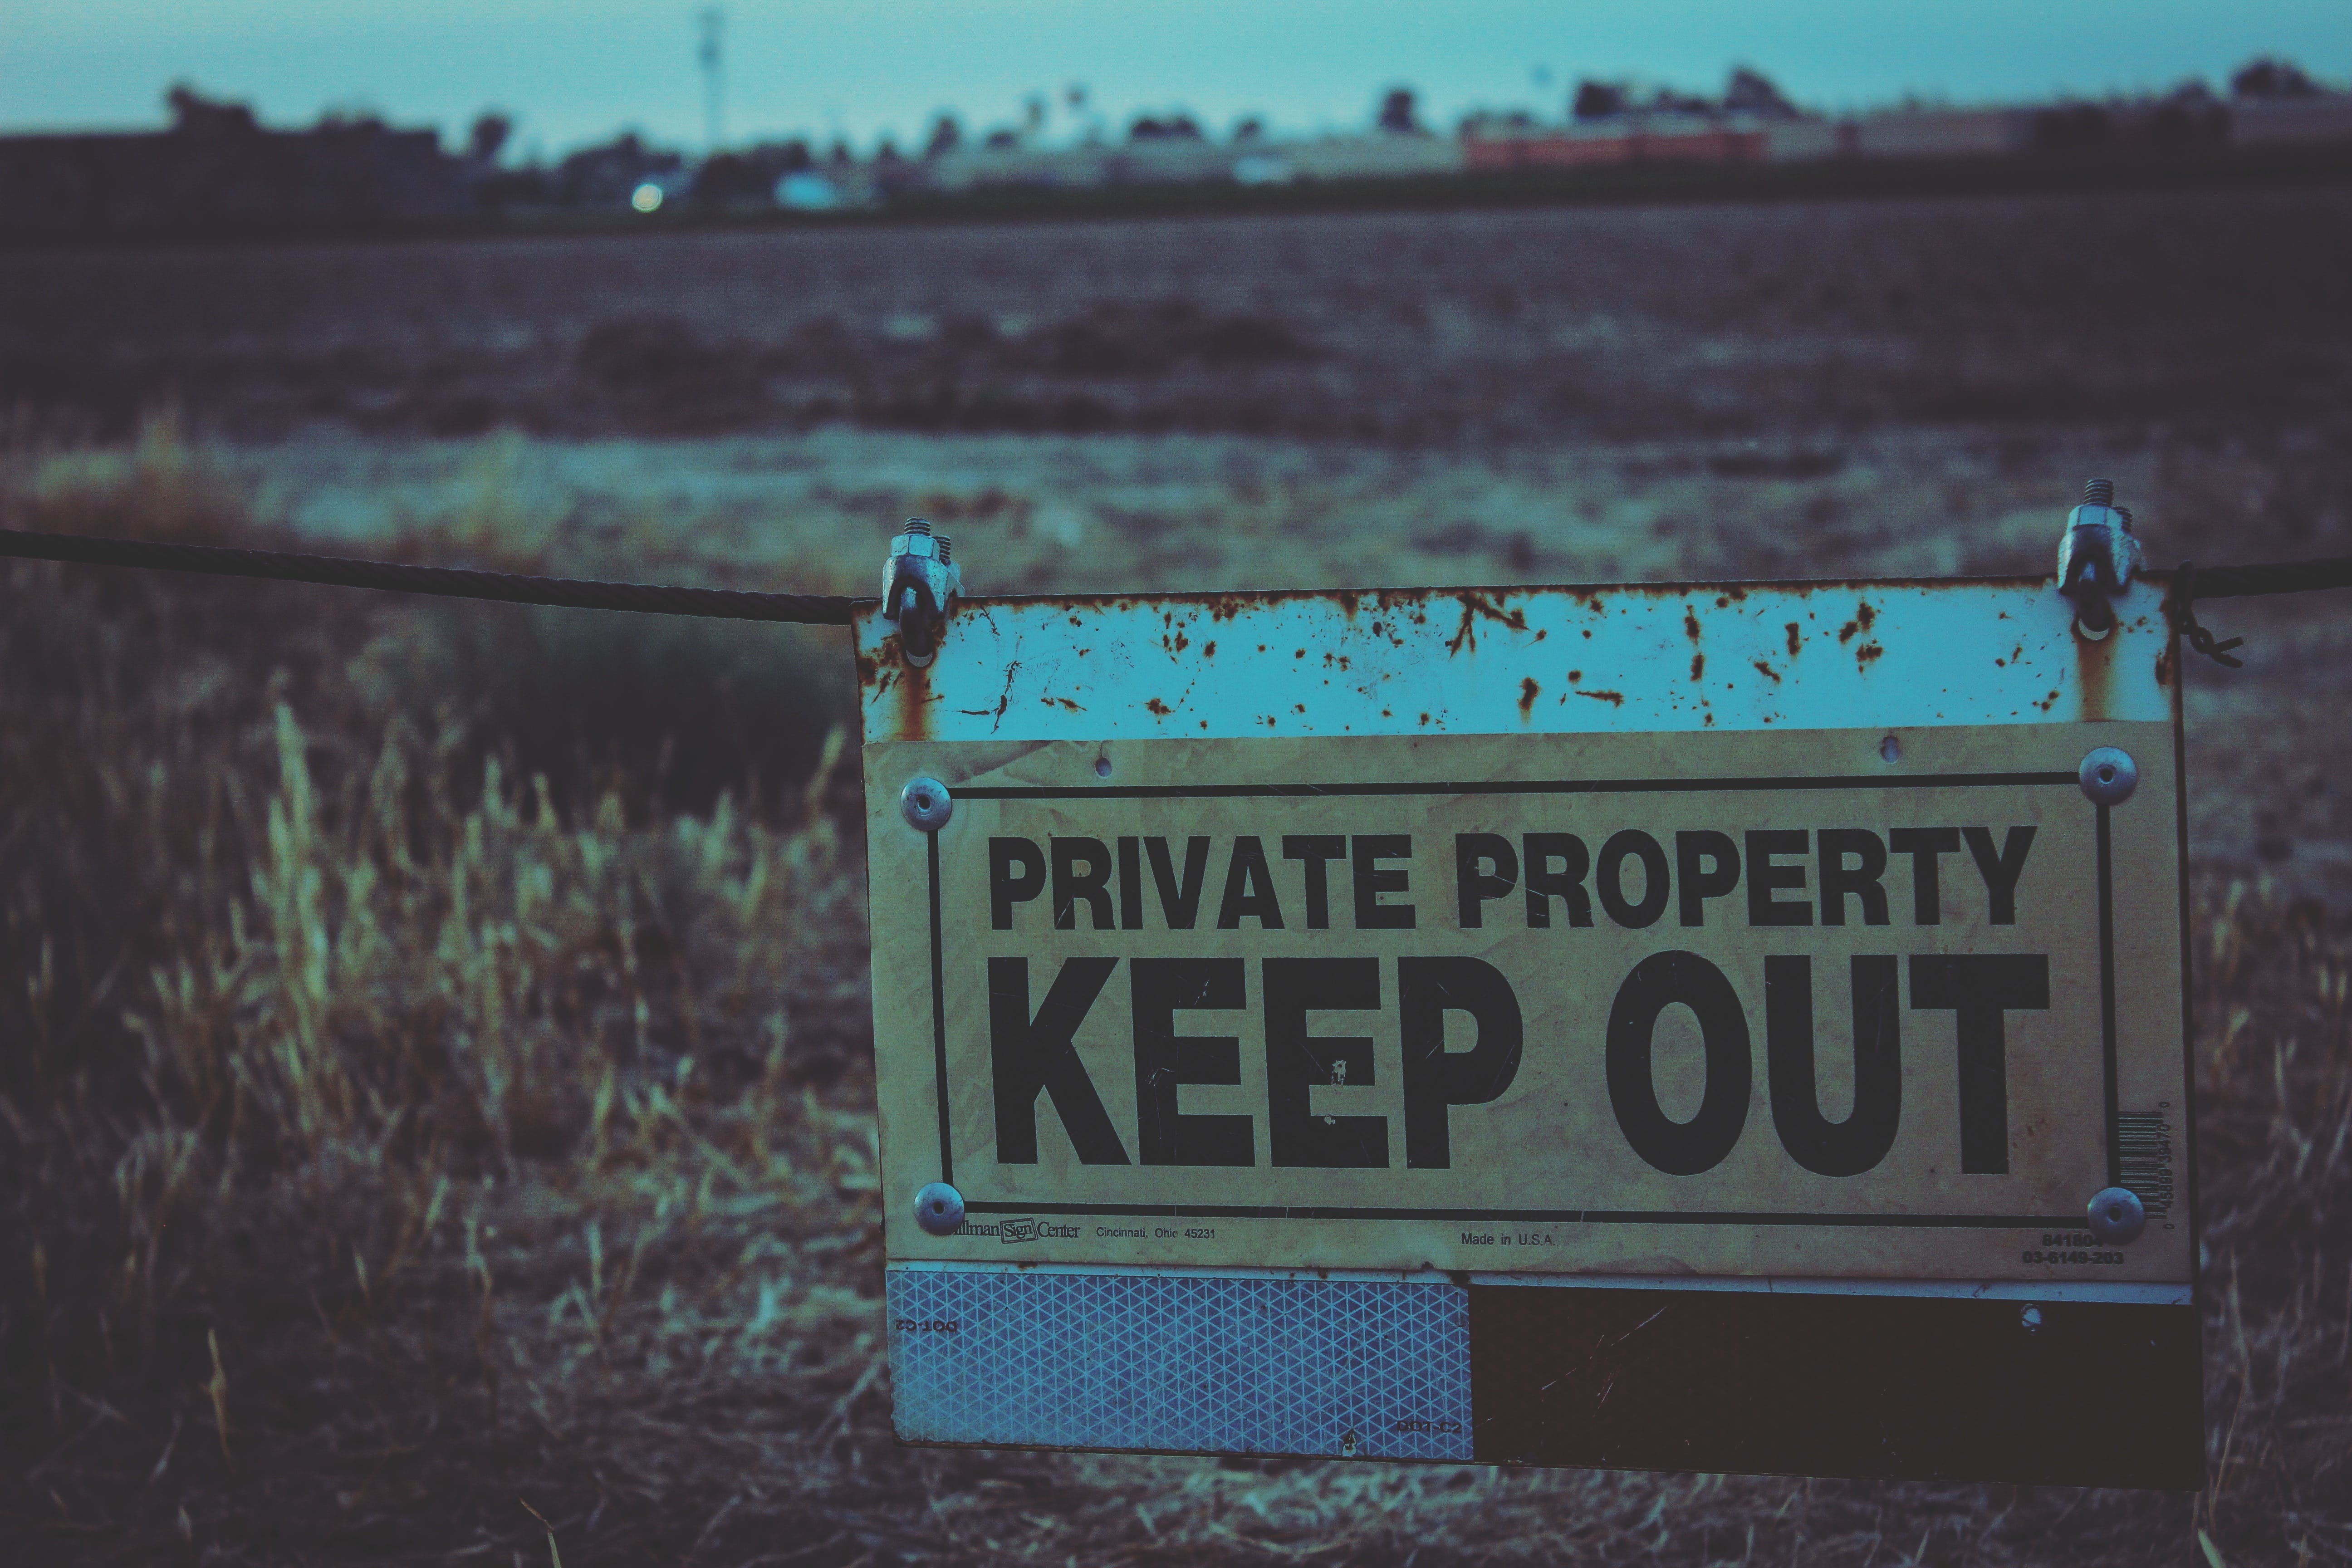 Private Property Keep Out Signboard